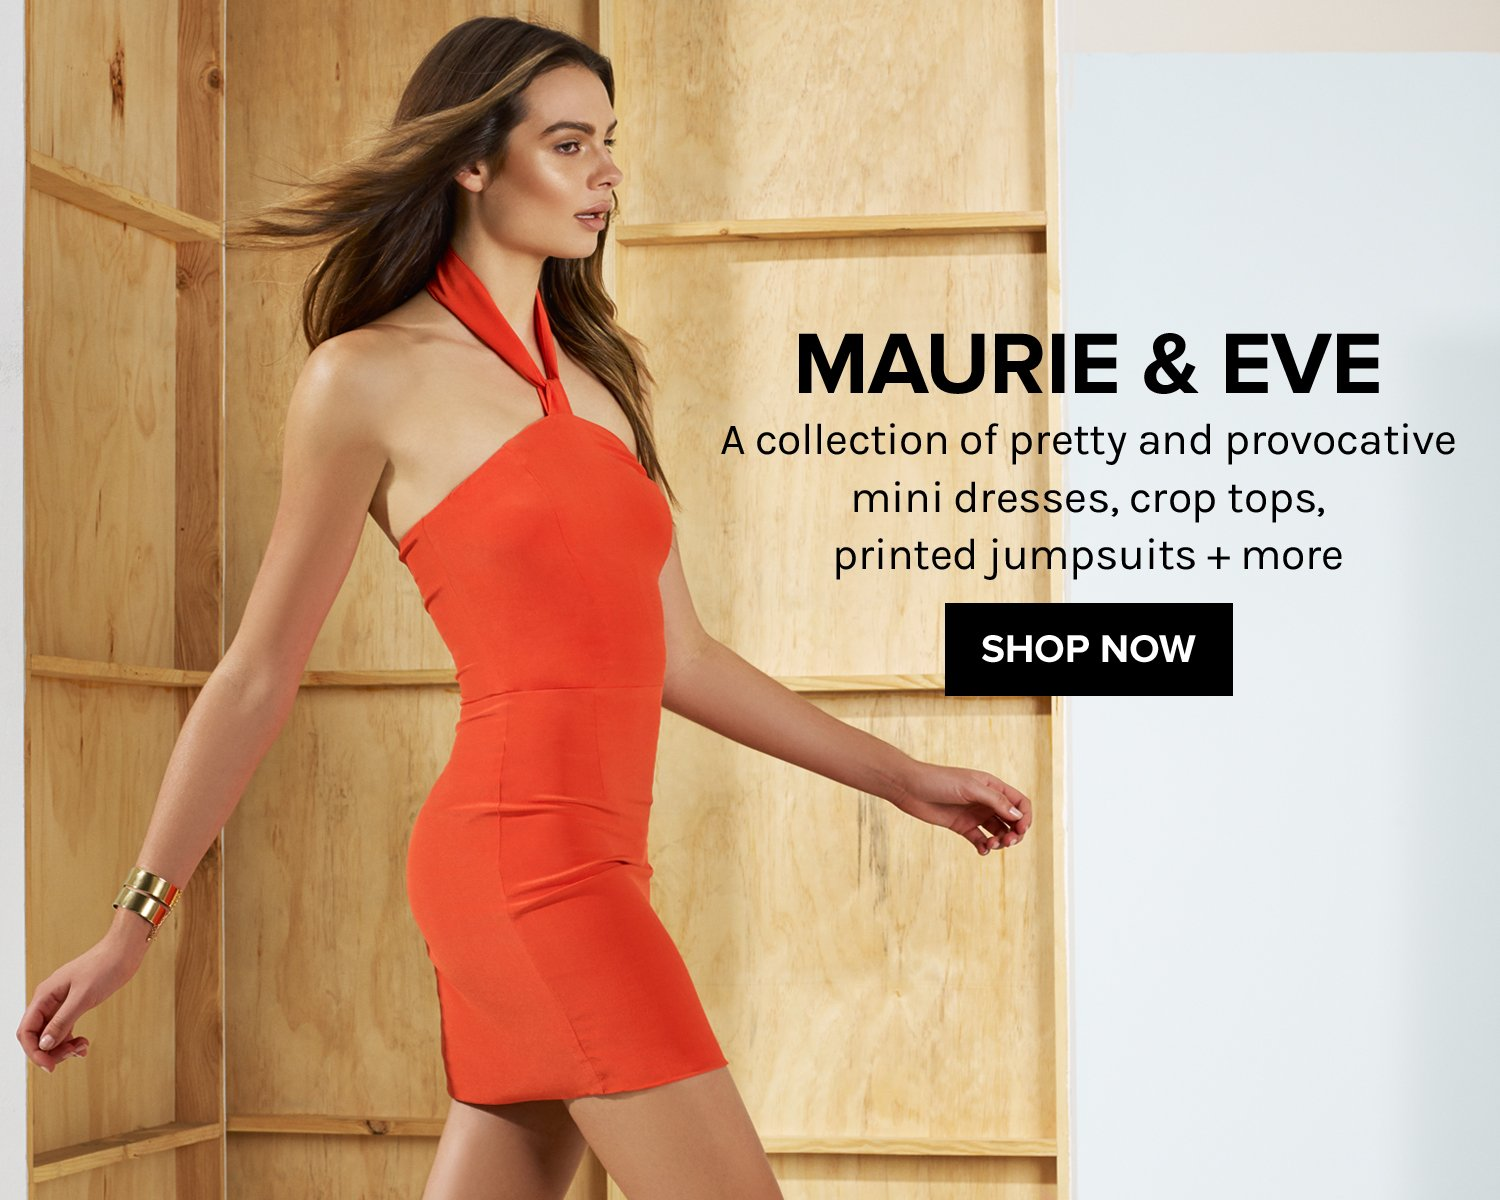 Maurie & Eve. A collection of pretty and provocative mini dresses, crop tops, printed jumpsuits + more. SHOP NOW!